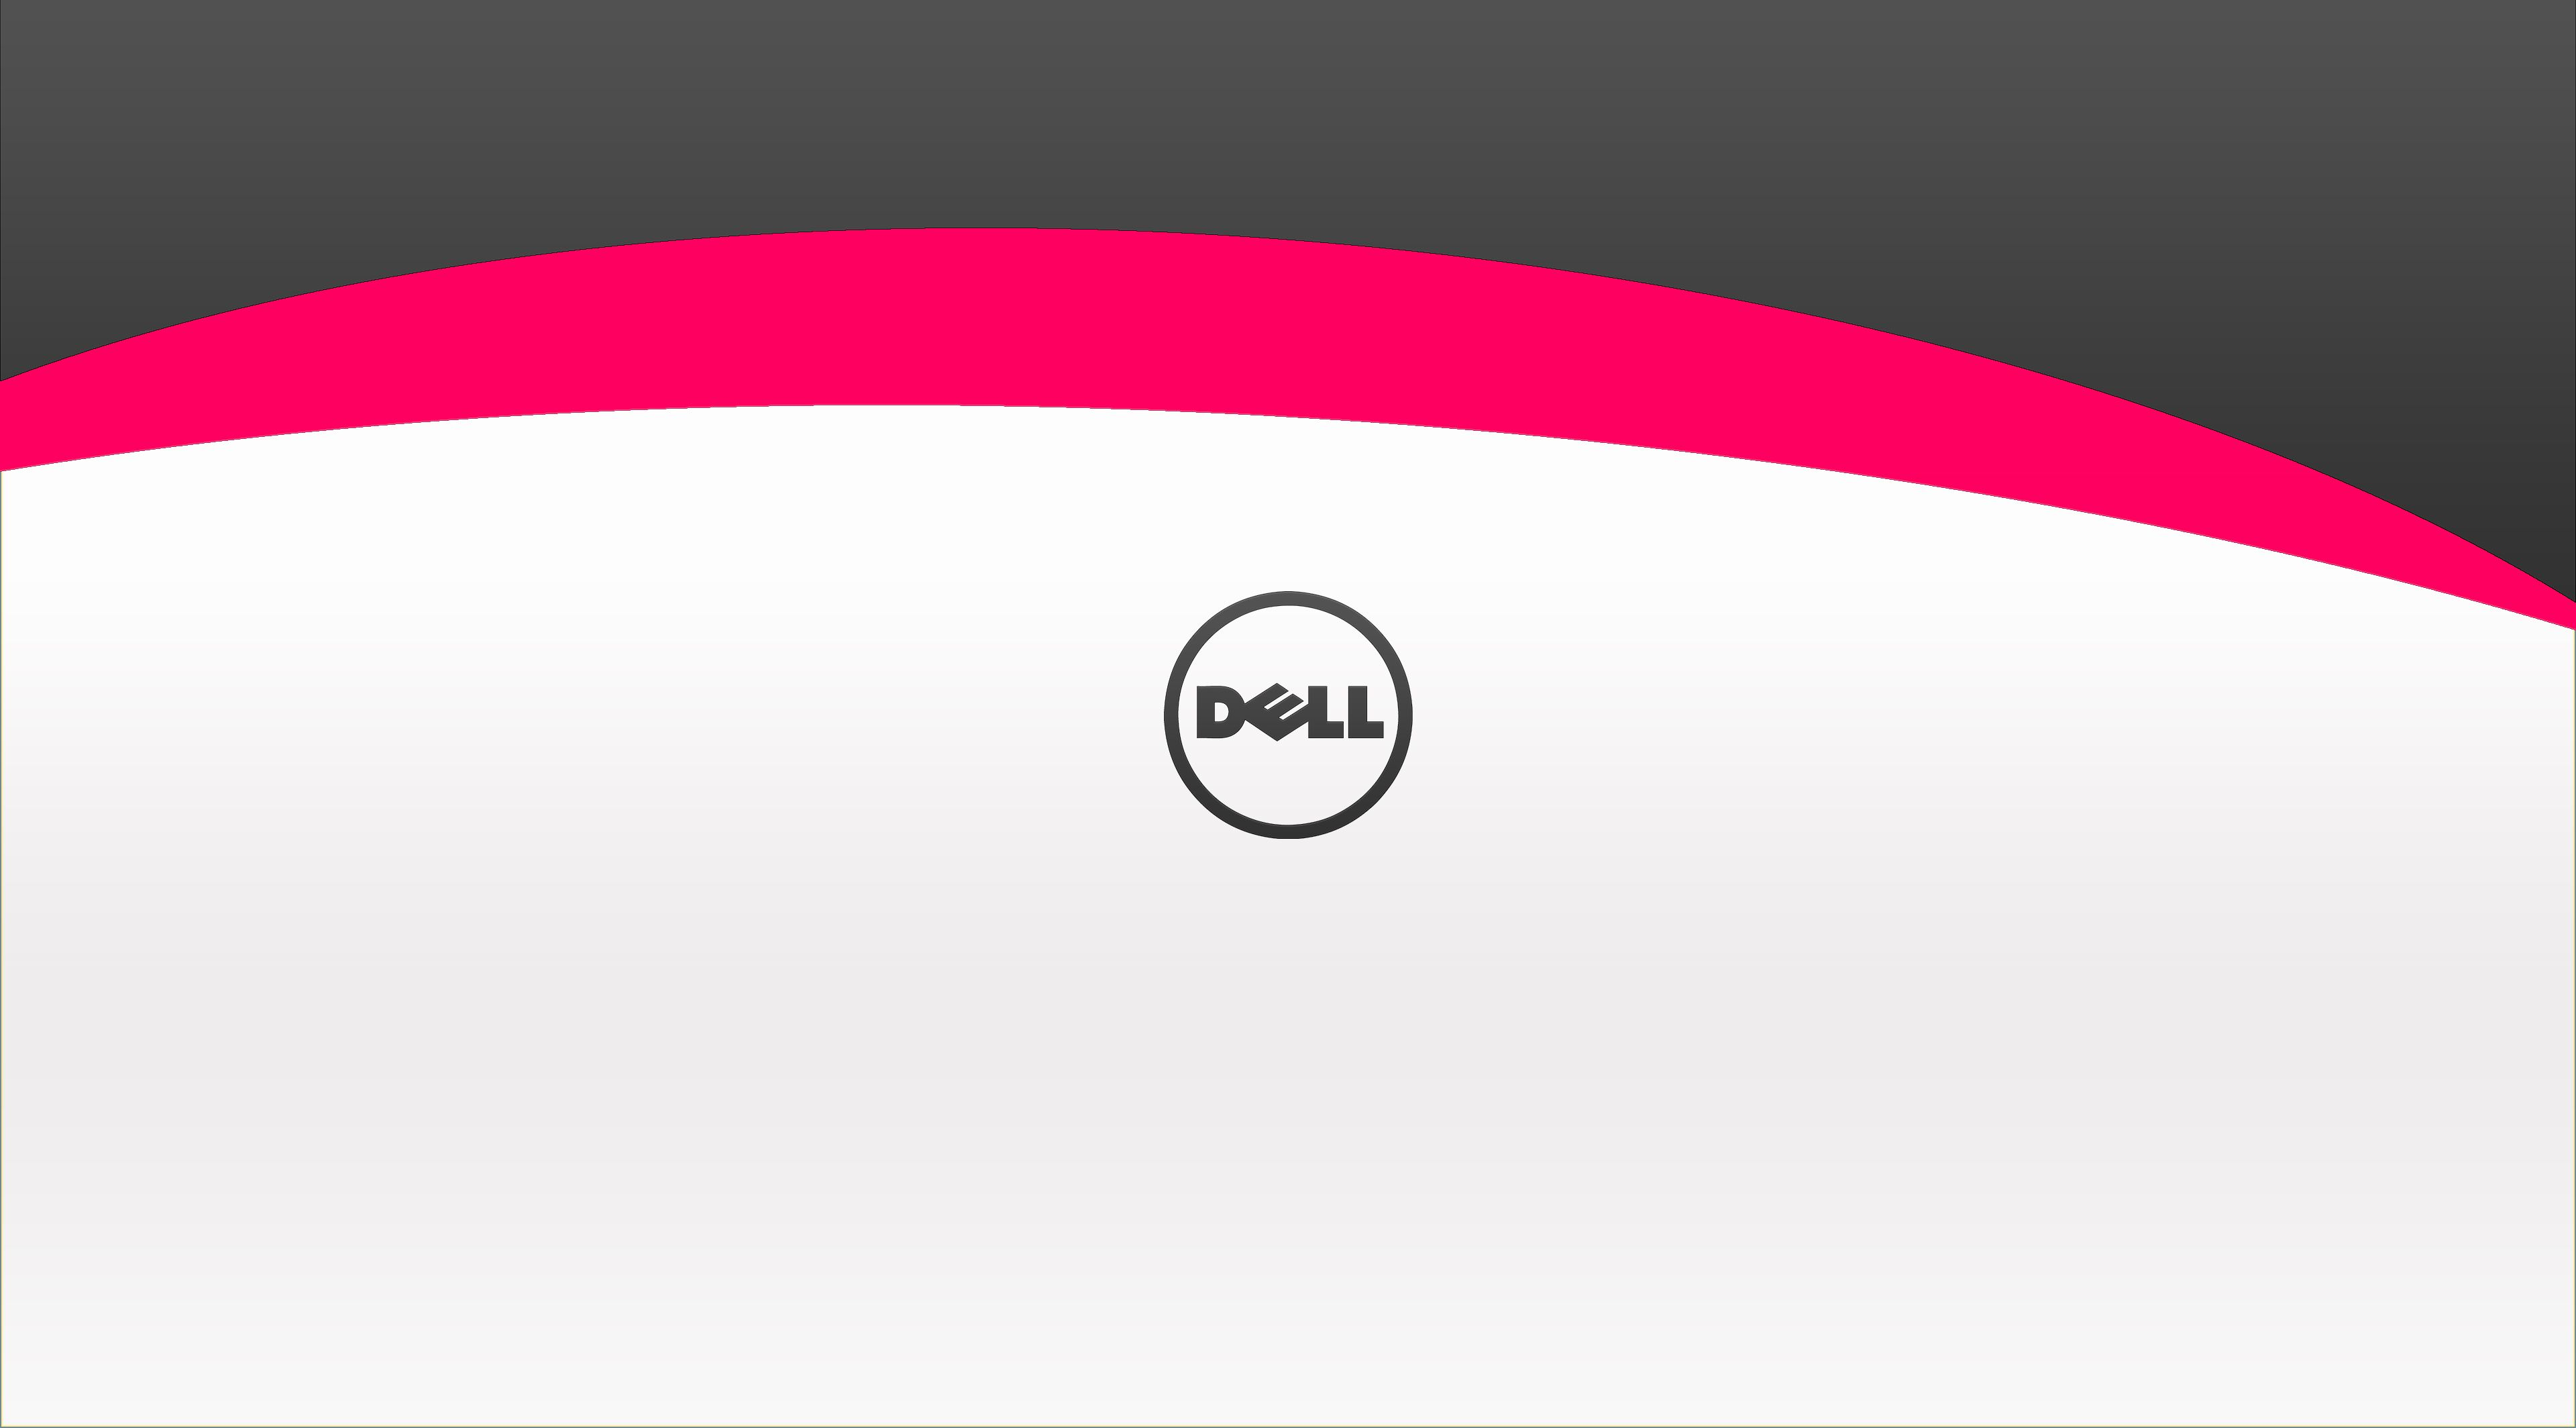 Dell 4K Wallpapers   Top Dell 4K Backgrounds   WallpaperAccess 3840x2128